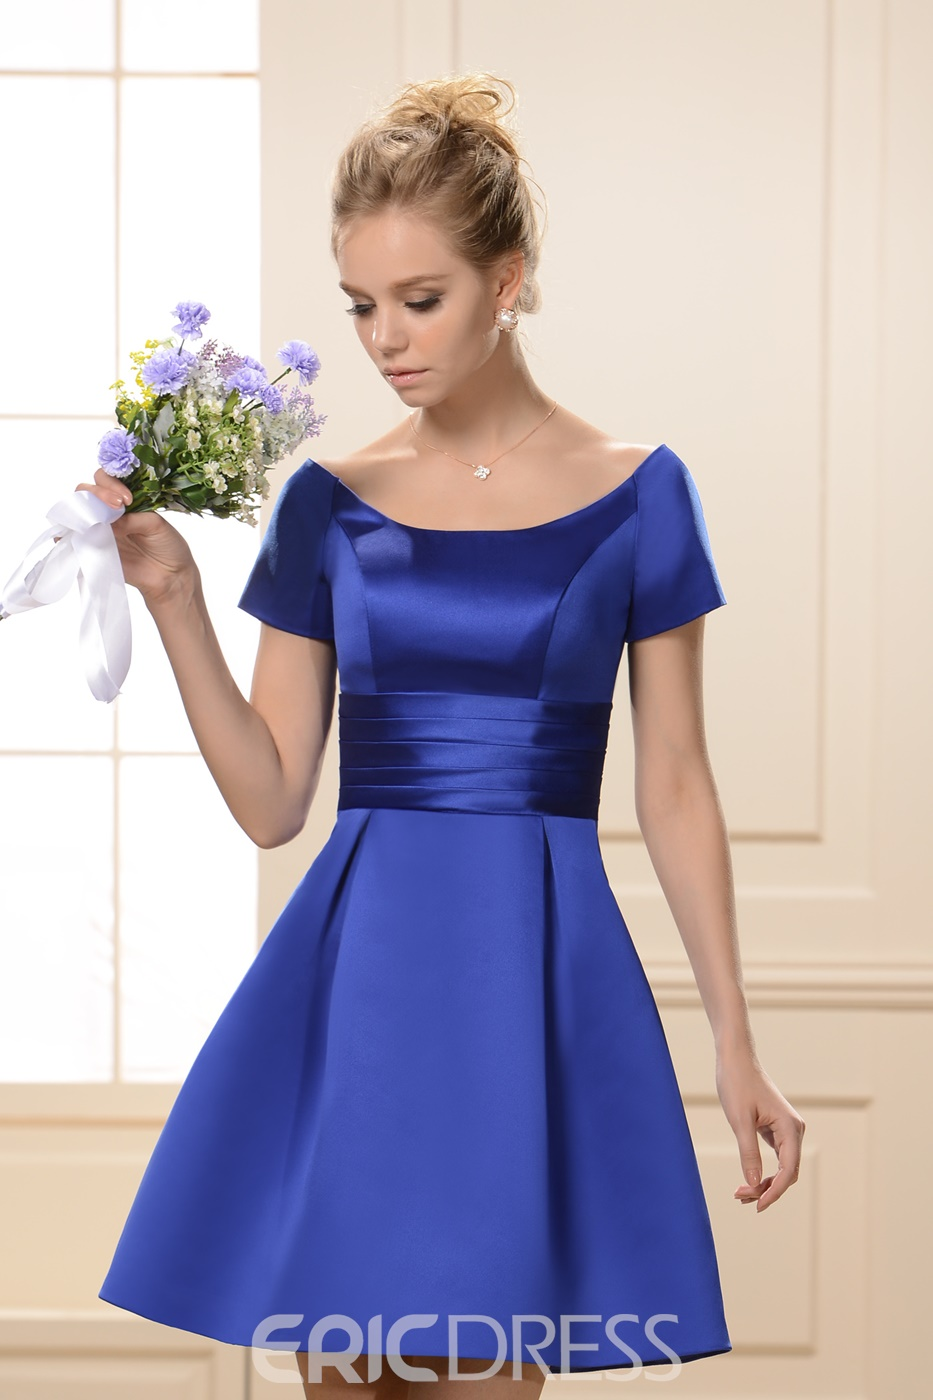 Princess A-Line Scoop Neckline Short Sleeves Knee-Length Bridesmaid Dress